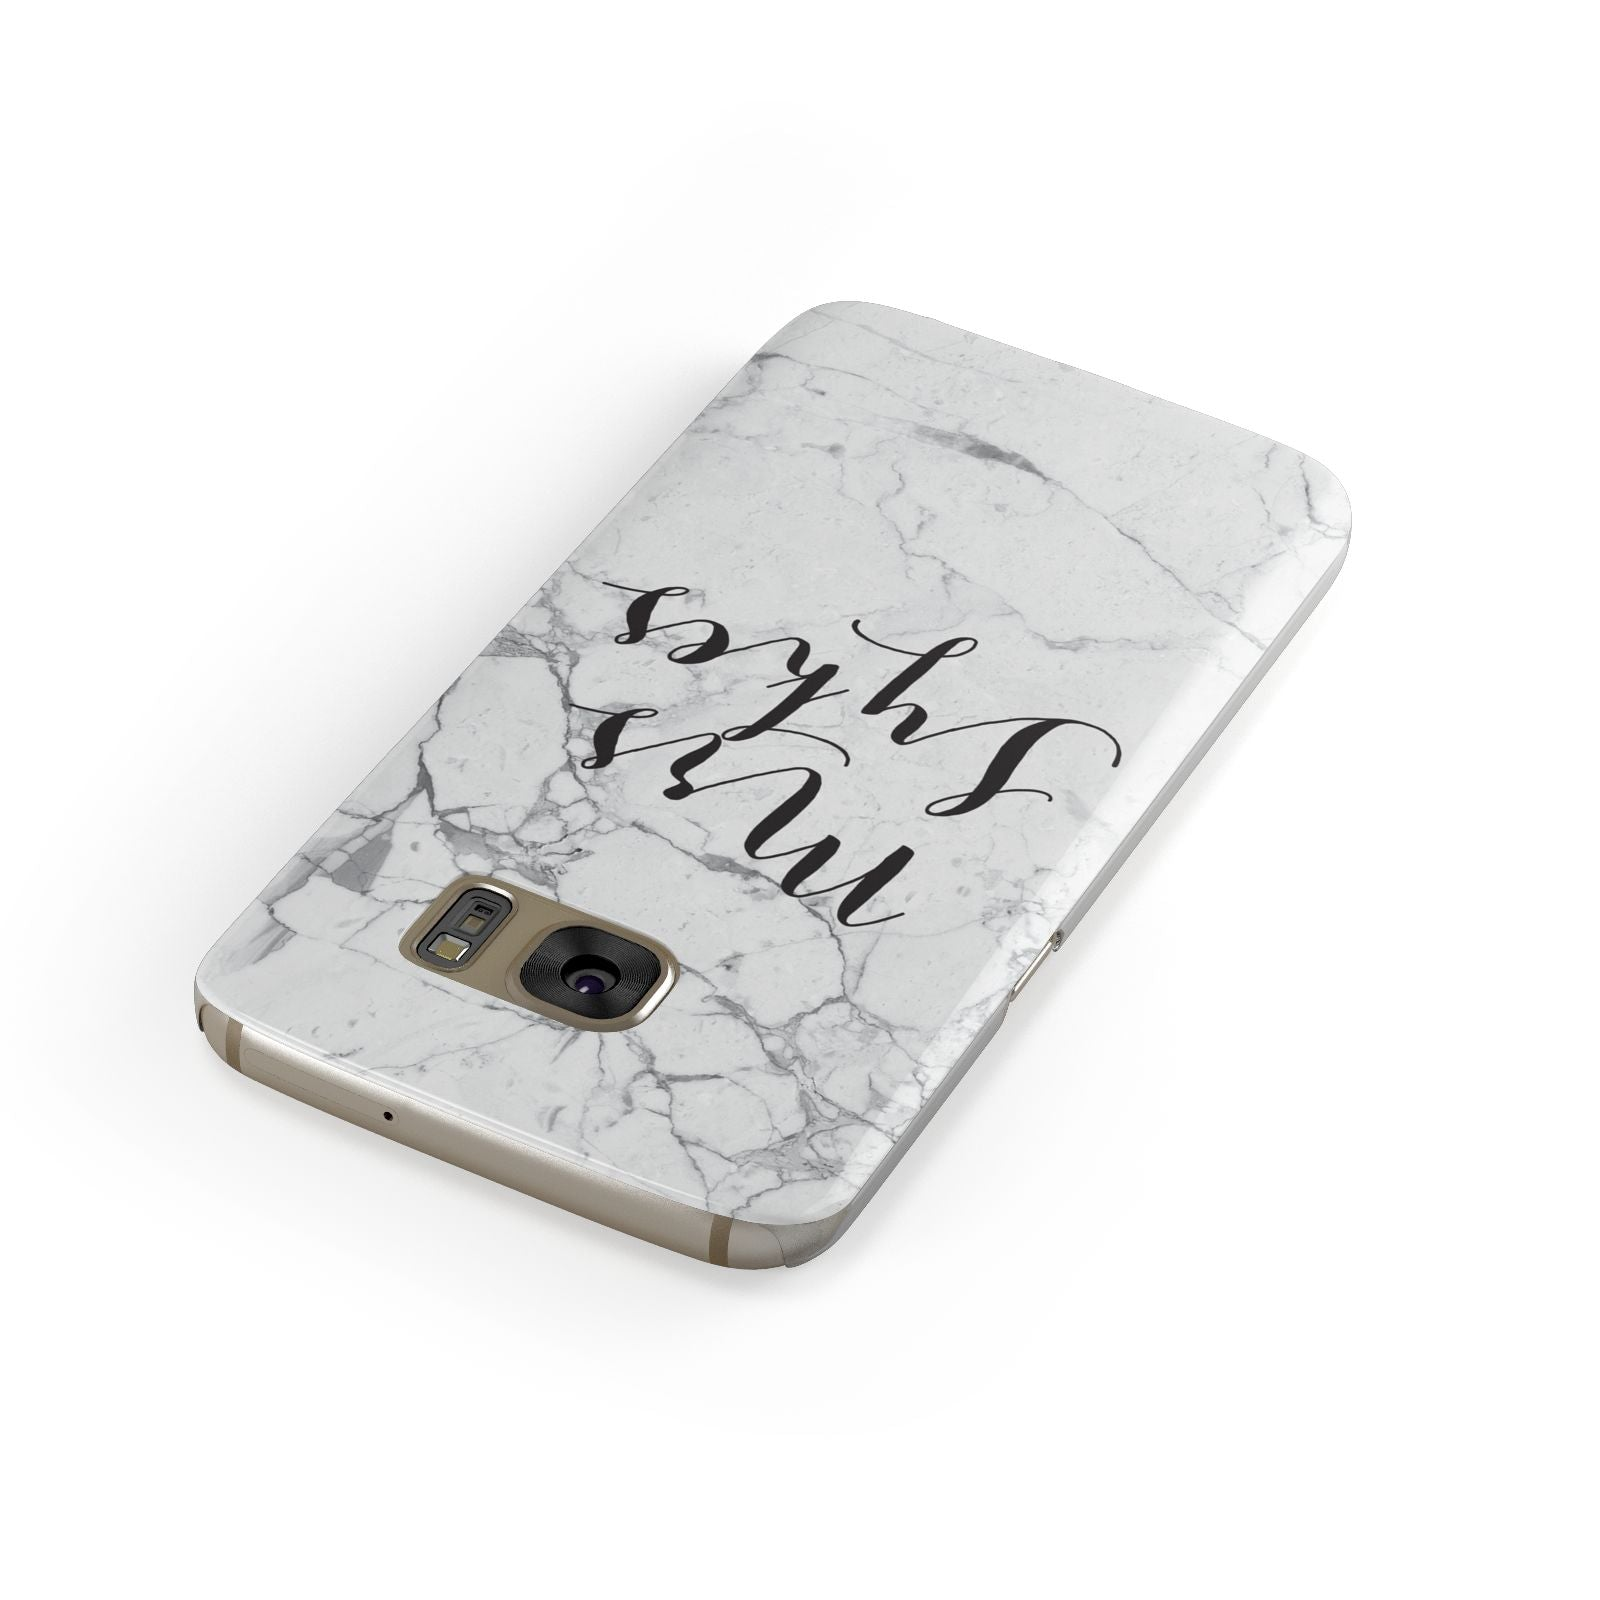 Surname Personalised Marble Samsung Galaxy Case Front Close Up